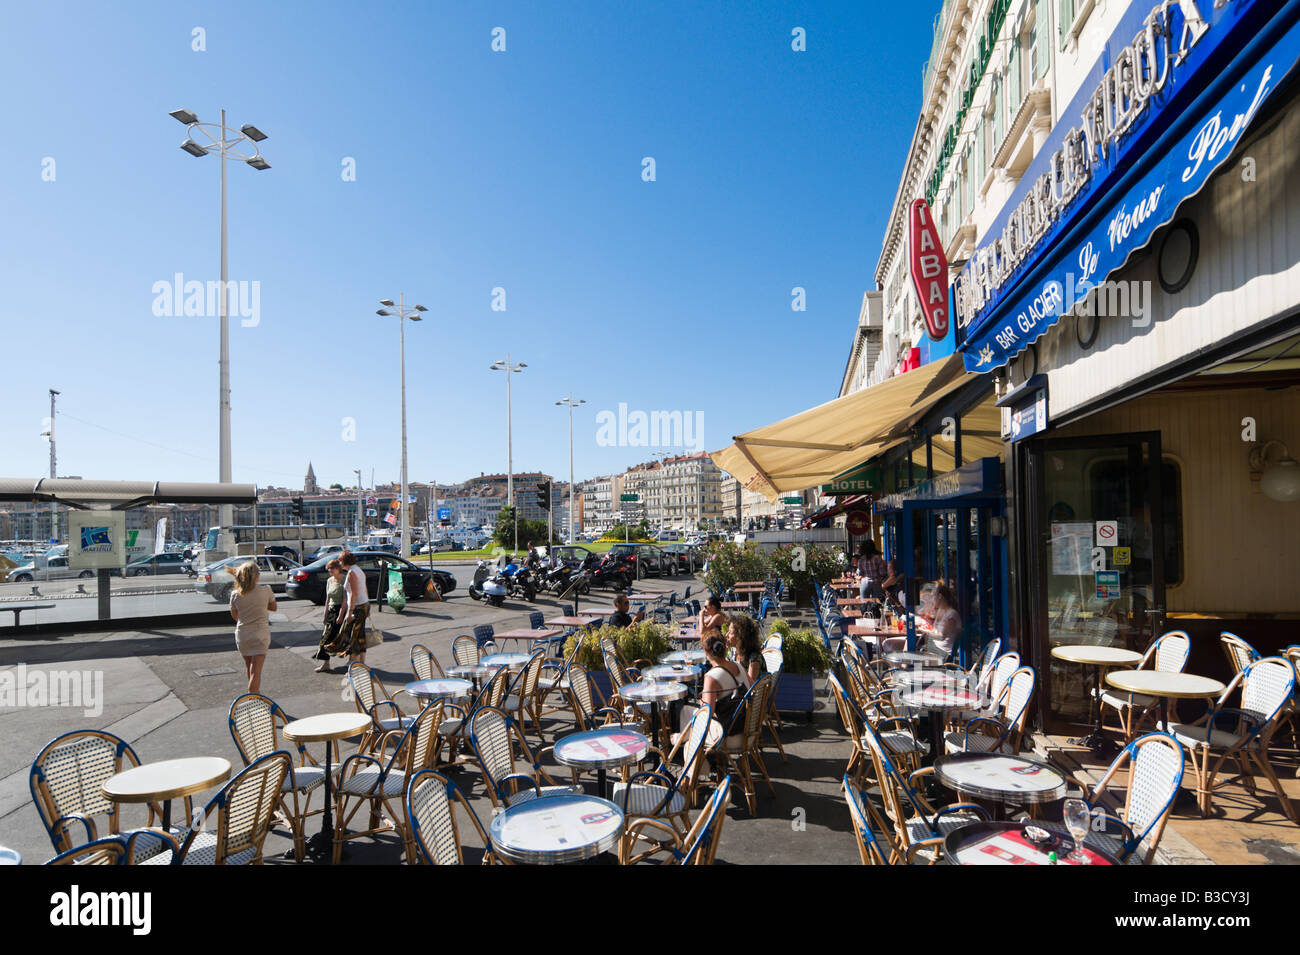 Harbourfront cafe bar on the quai des belges vieux port district stock photo royalty free - Restaurant le vieux port marseille ...